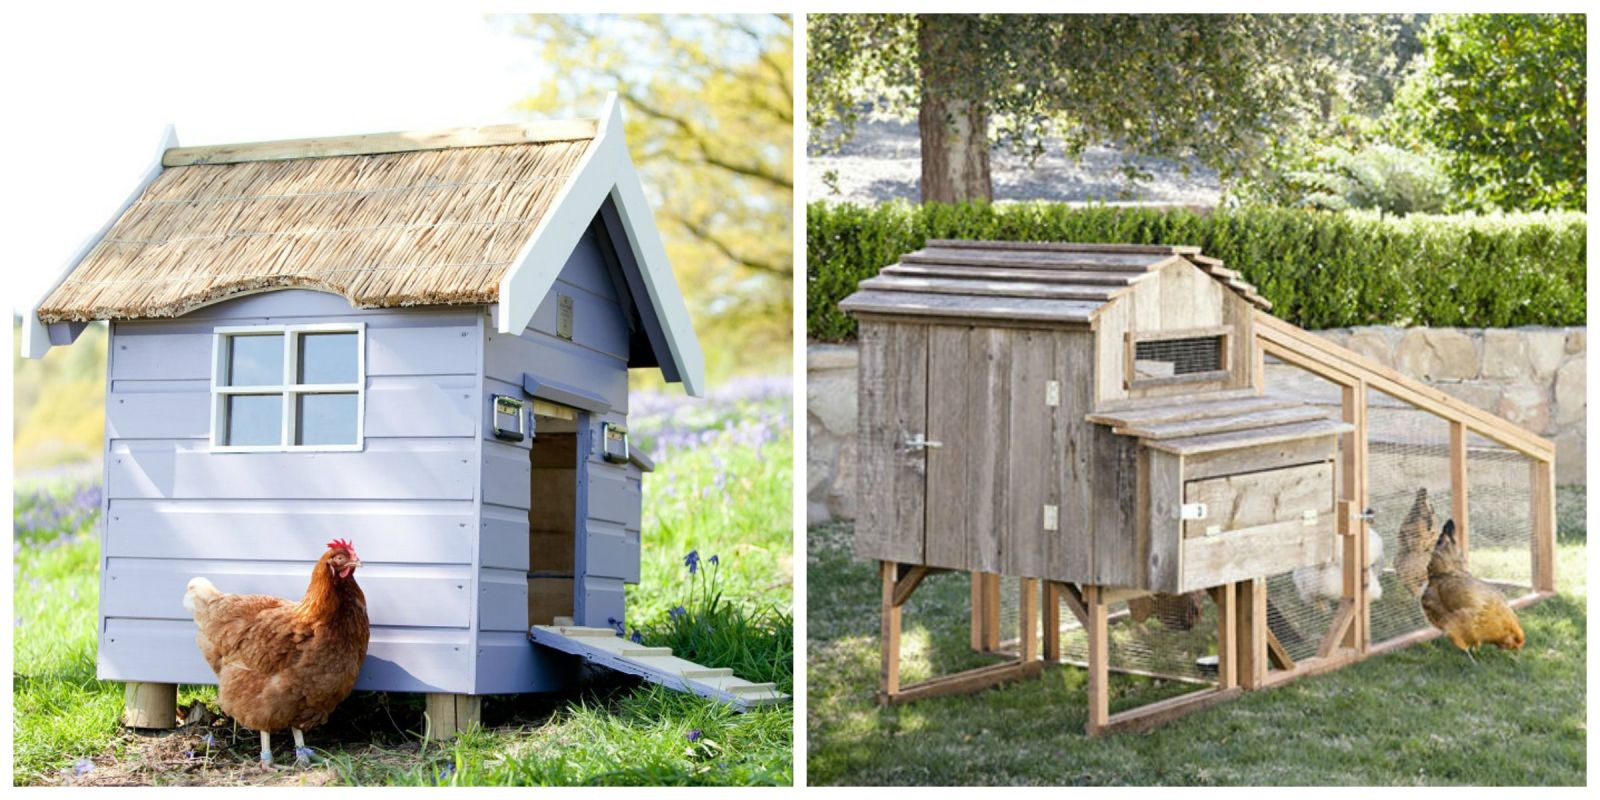 the city of austin is now paying people to keep backyard chicken coops